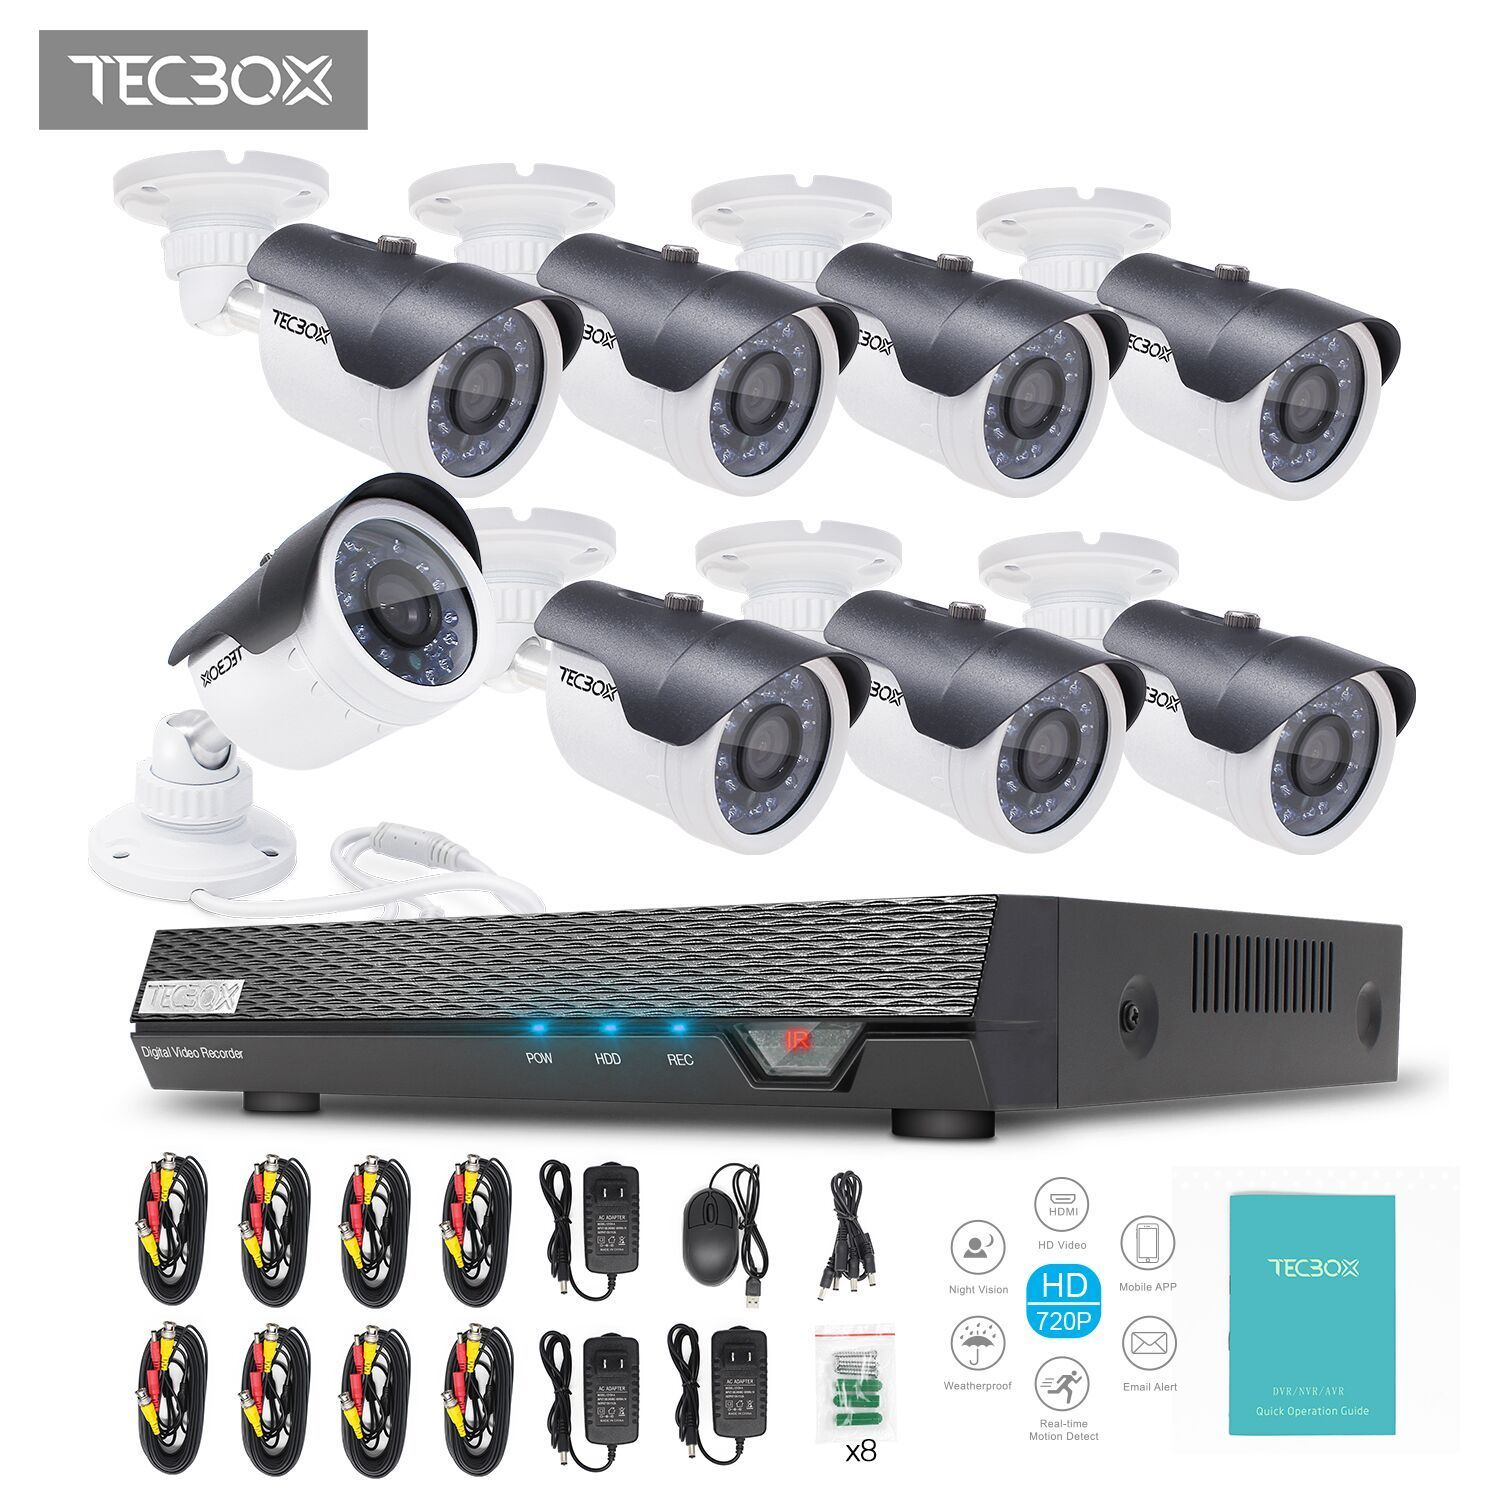 TECBOX 8 CH Wired  Home Surveillance Camera System AHD 720P Outdoor Night Vision Cameras Remote View Motion Detection NO Hard Drive